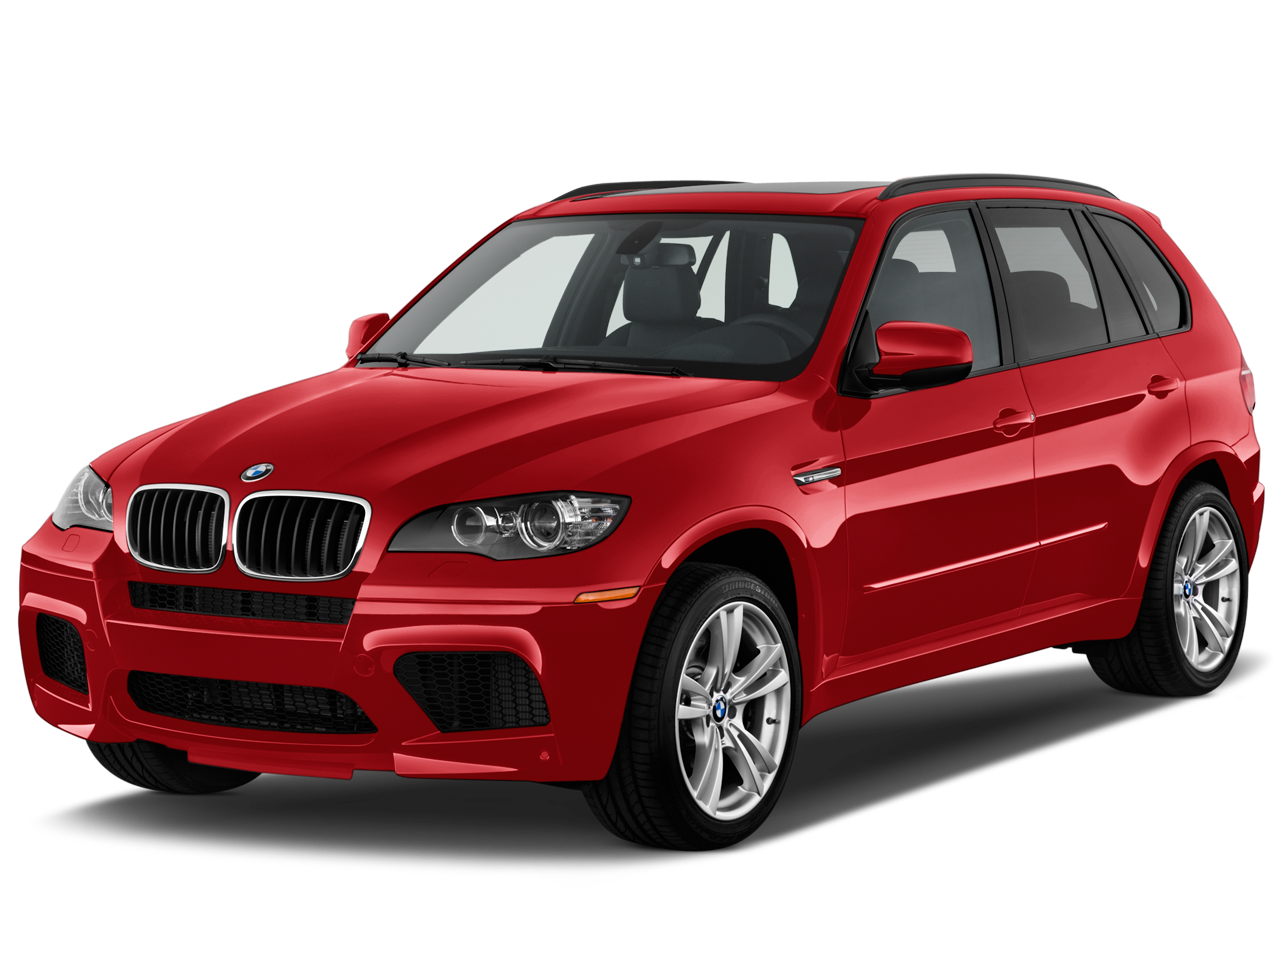 red X5 BMW PNG image, free download  red X5 BMW PNG image, free